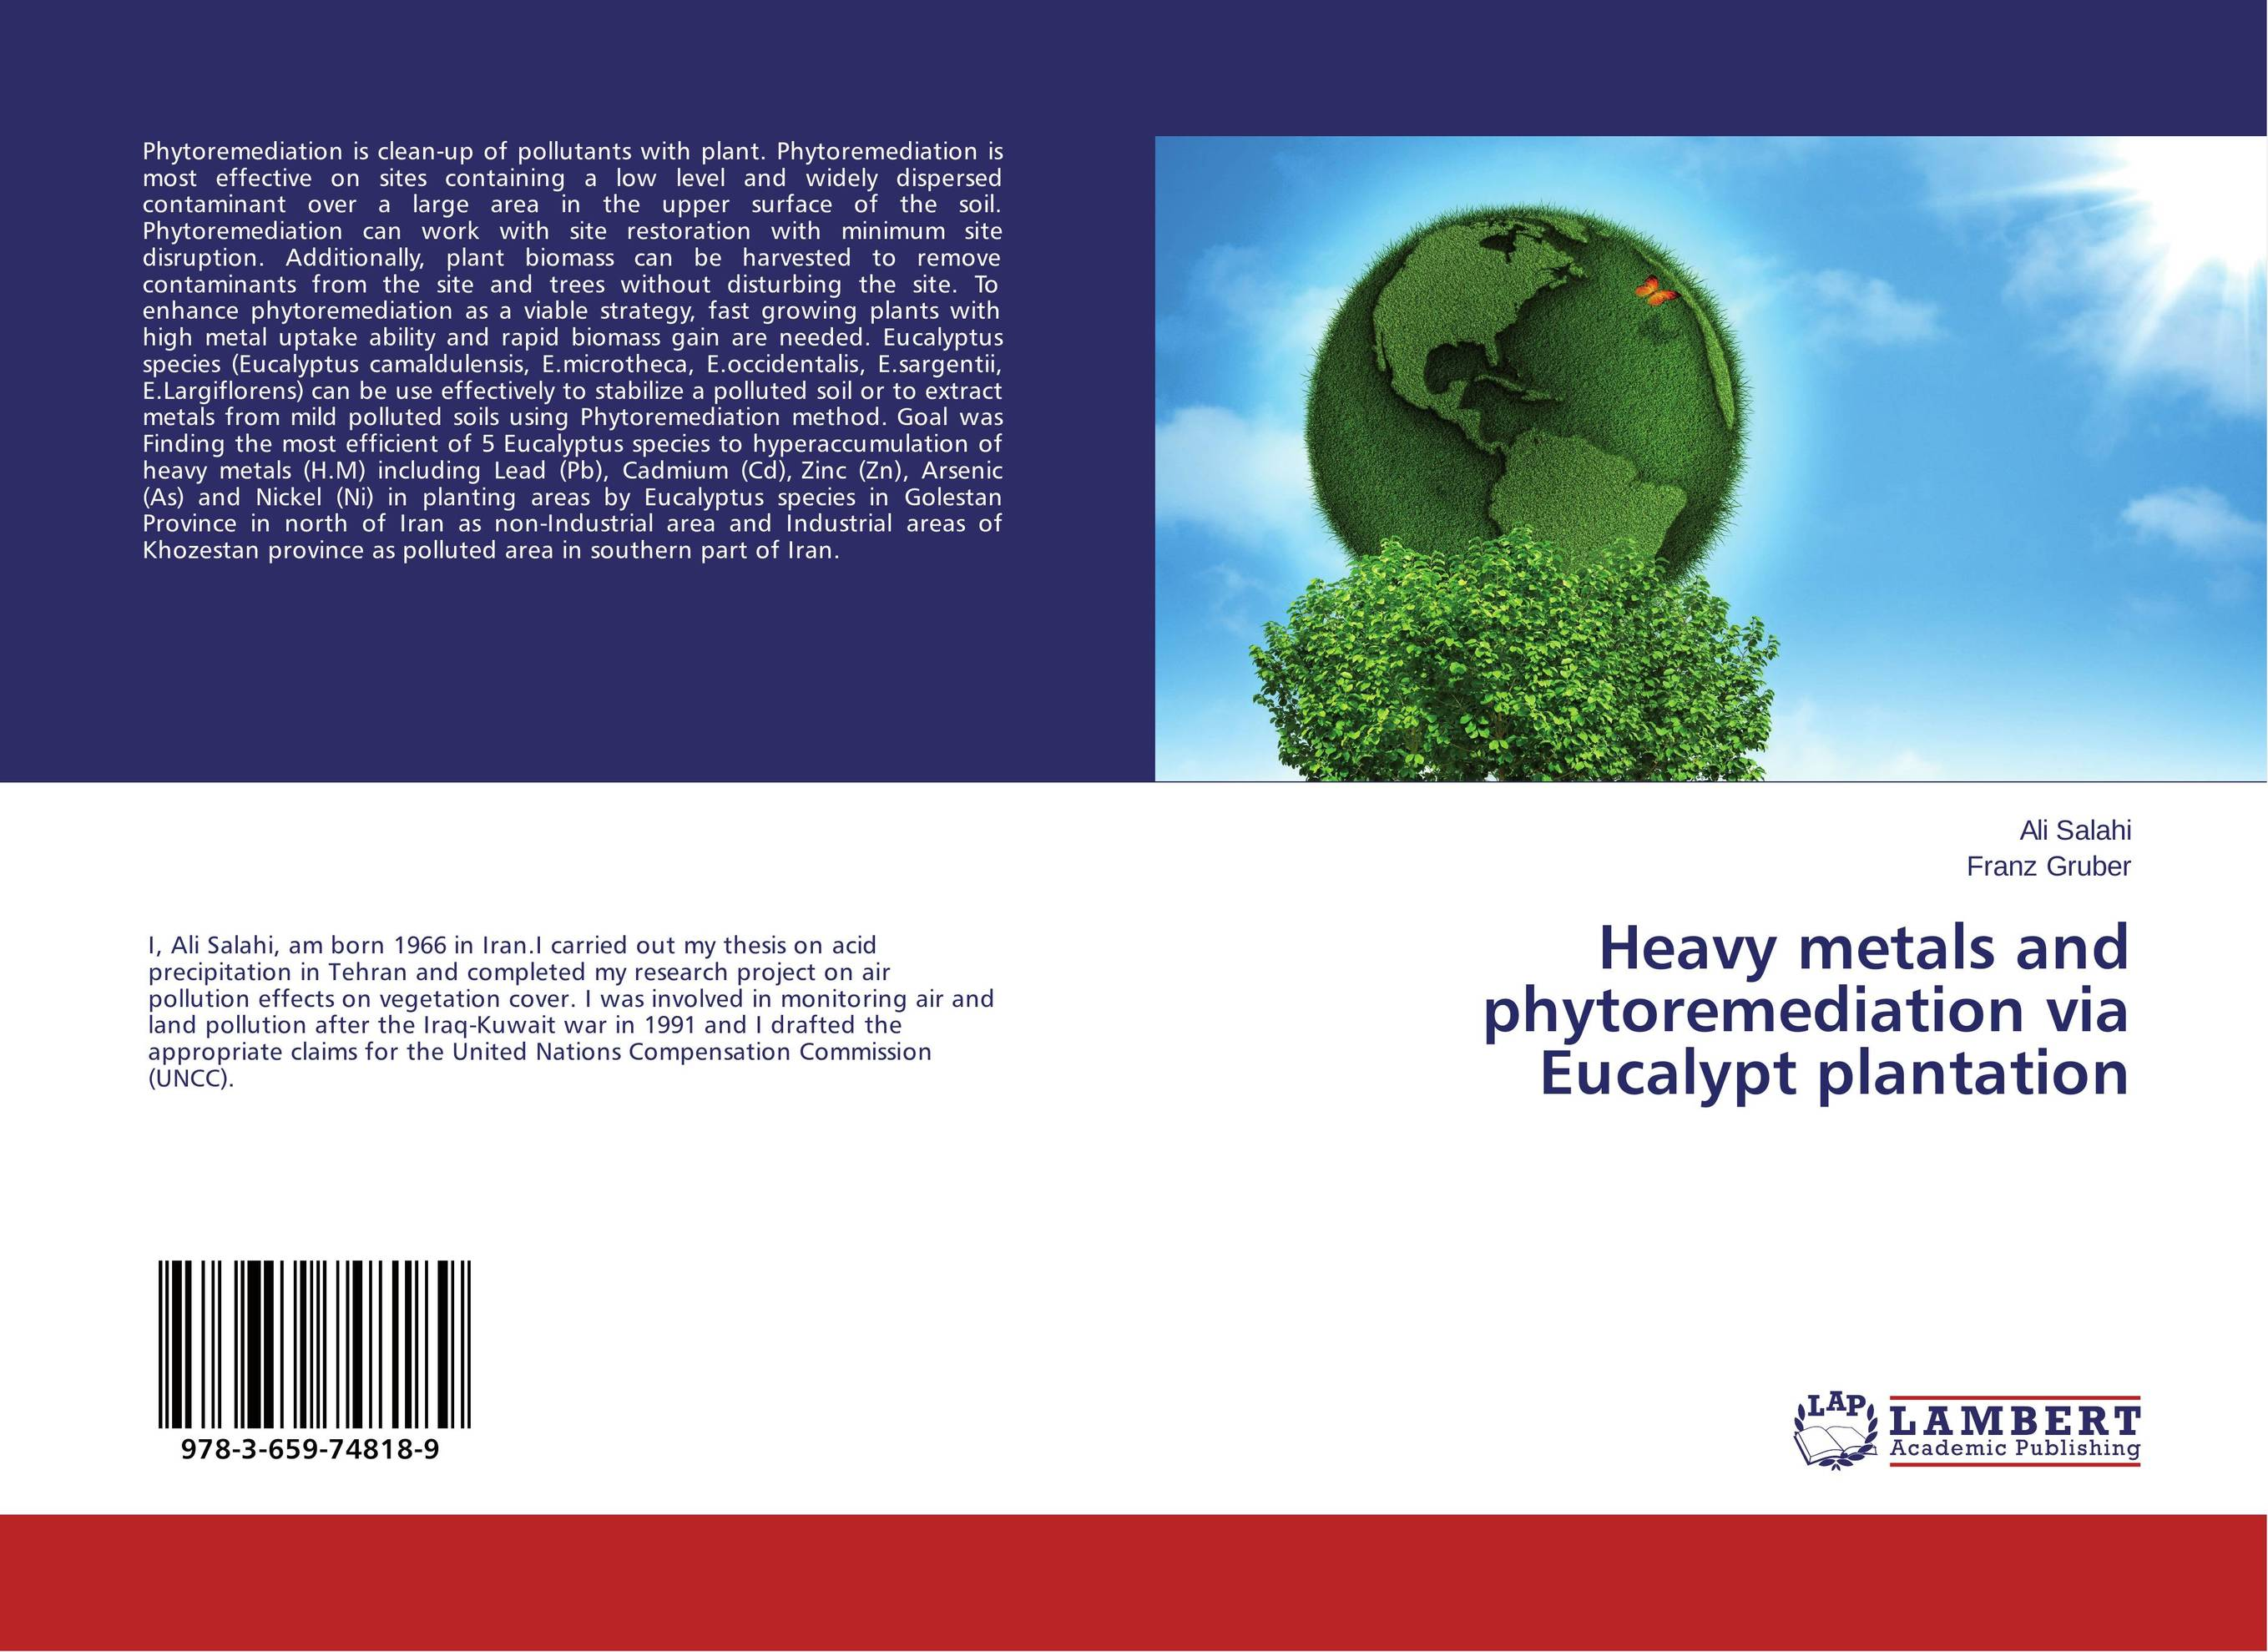 Heavy metals and phytoremediation via Eucalypt plantation marwan a ibrahim effect of heavy metals on haematological and testicular functions